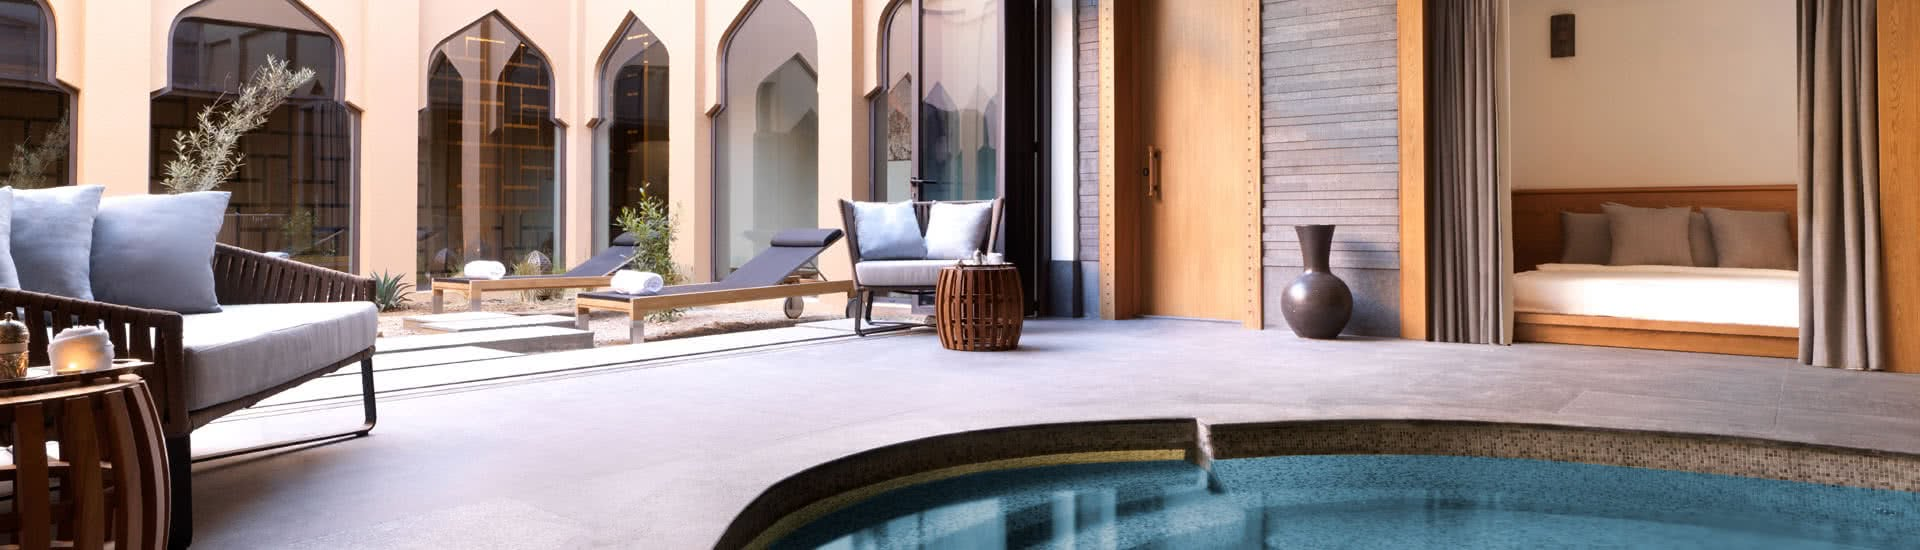 Spa Relaxation Area with Indoor Pool and Loungers at Anantara Jabal Resort